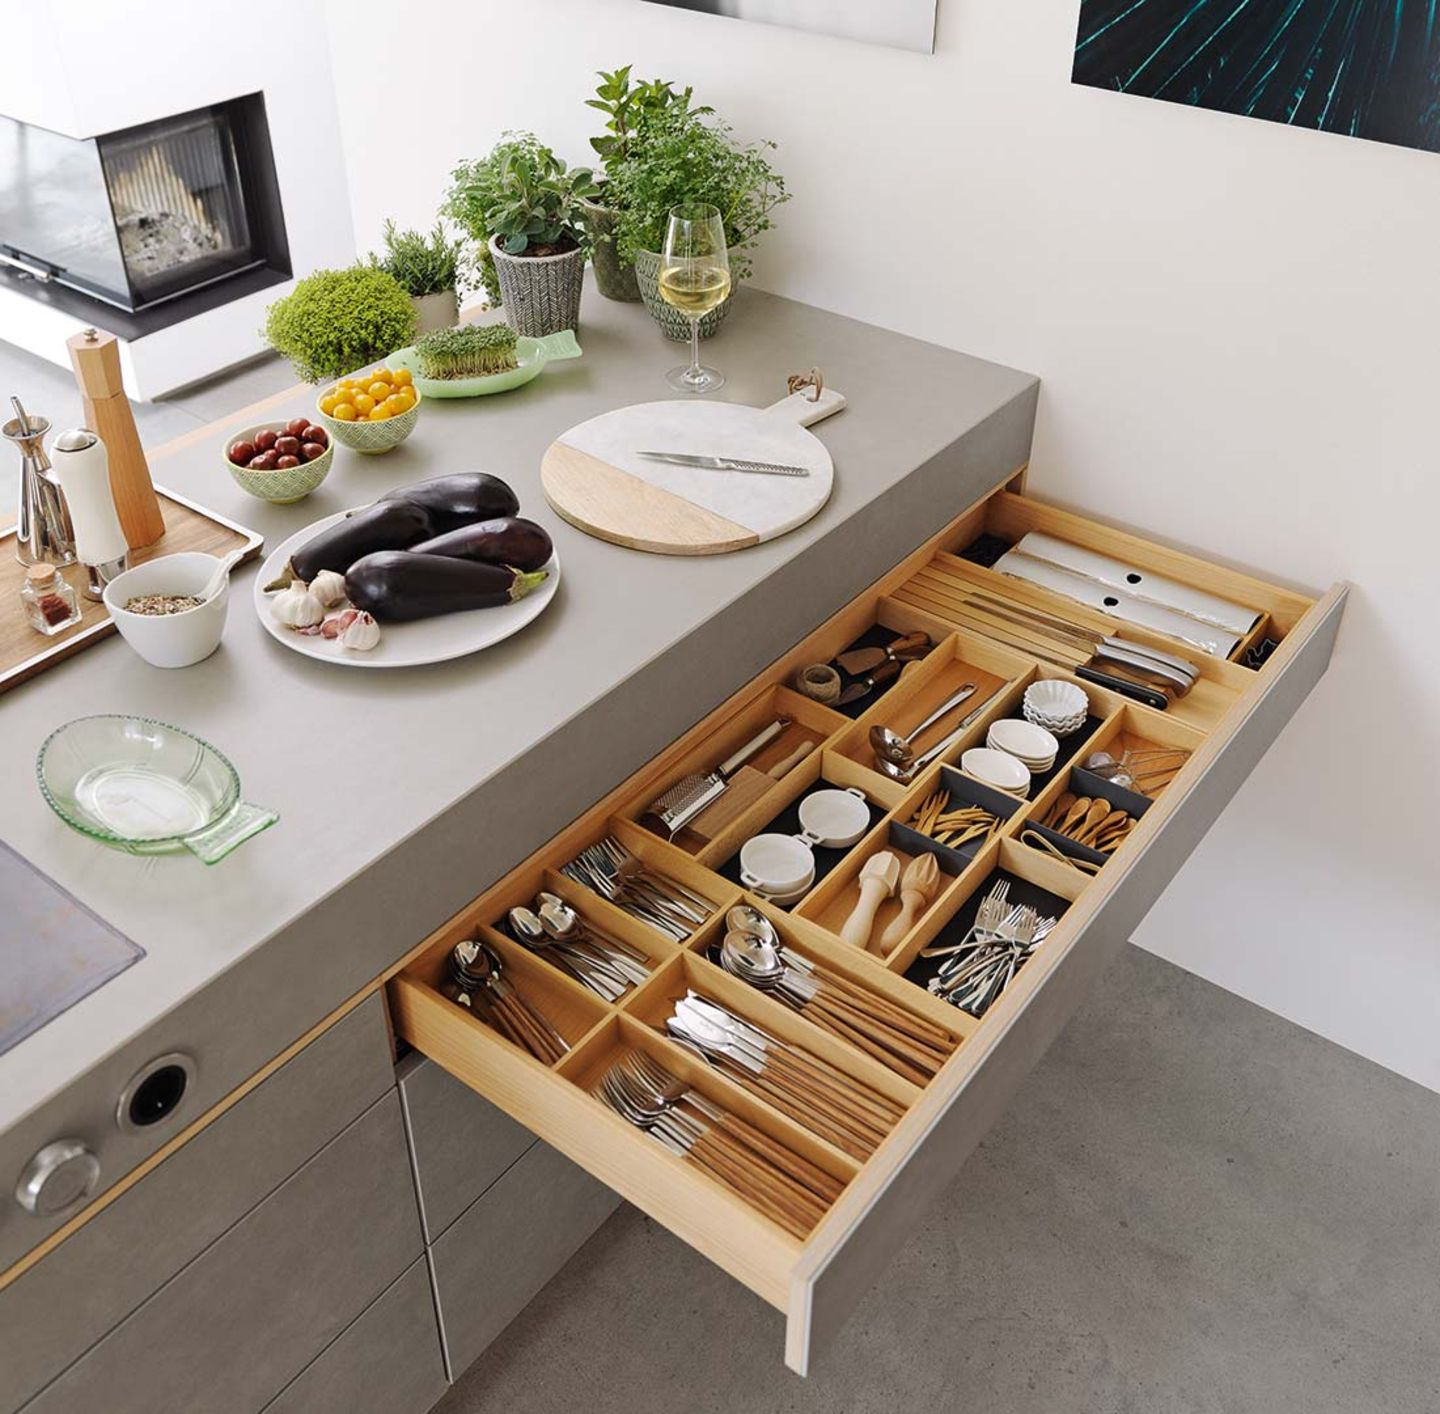 Solid wood filigno kitchen with practical interior layout of the drawers